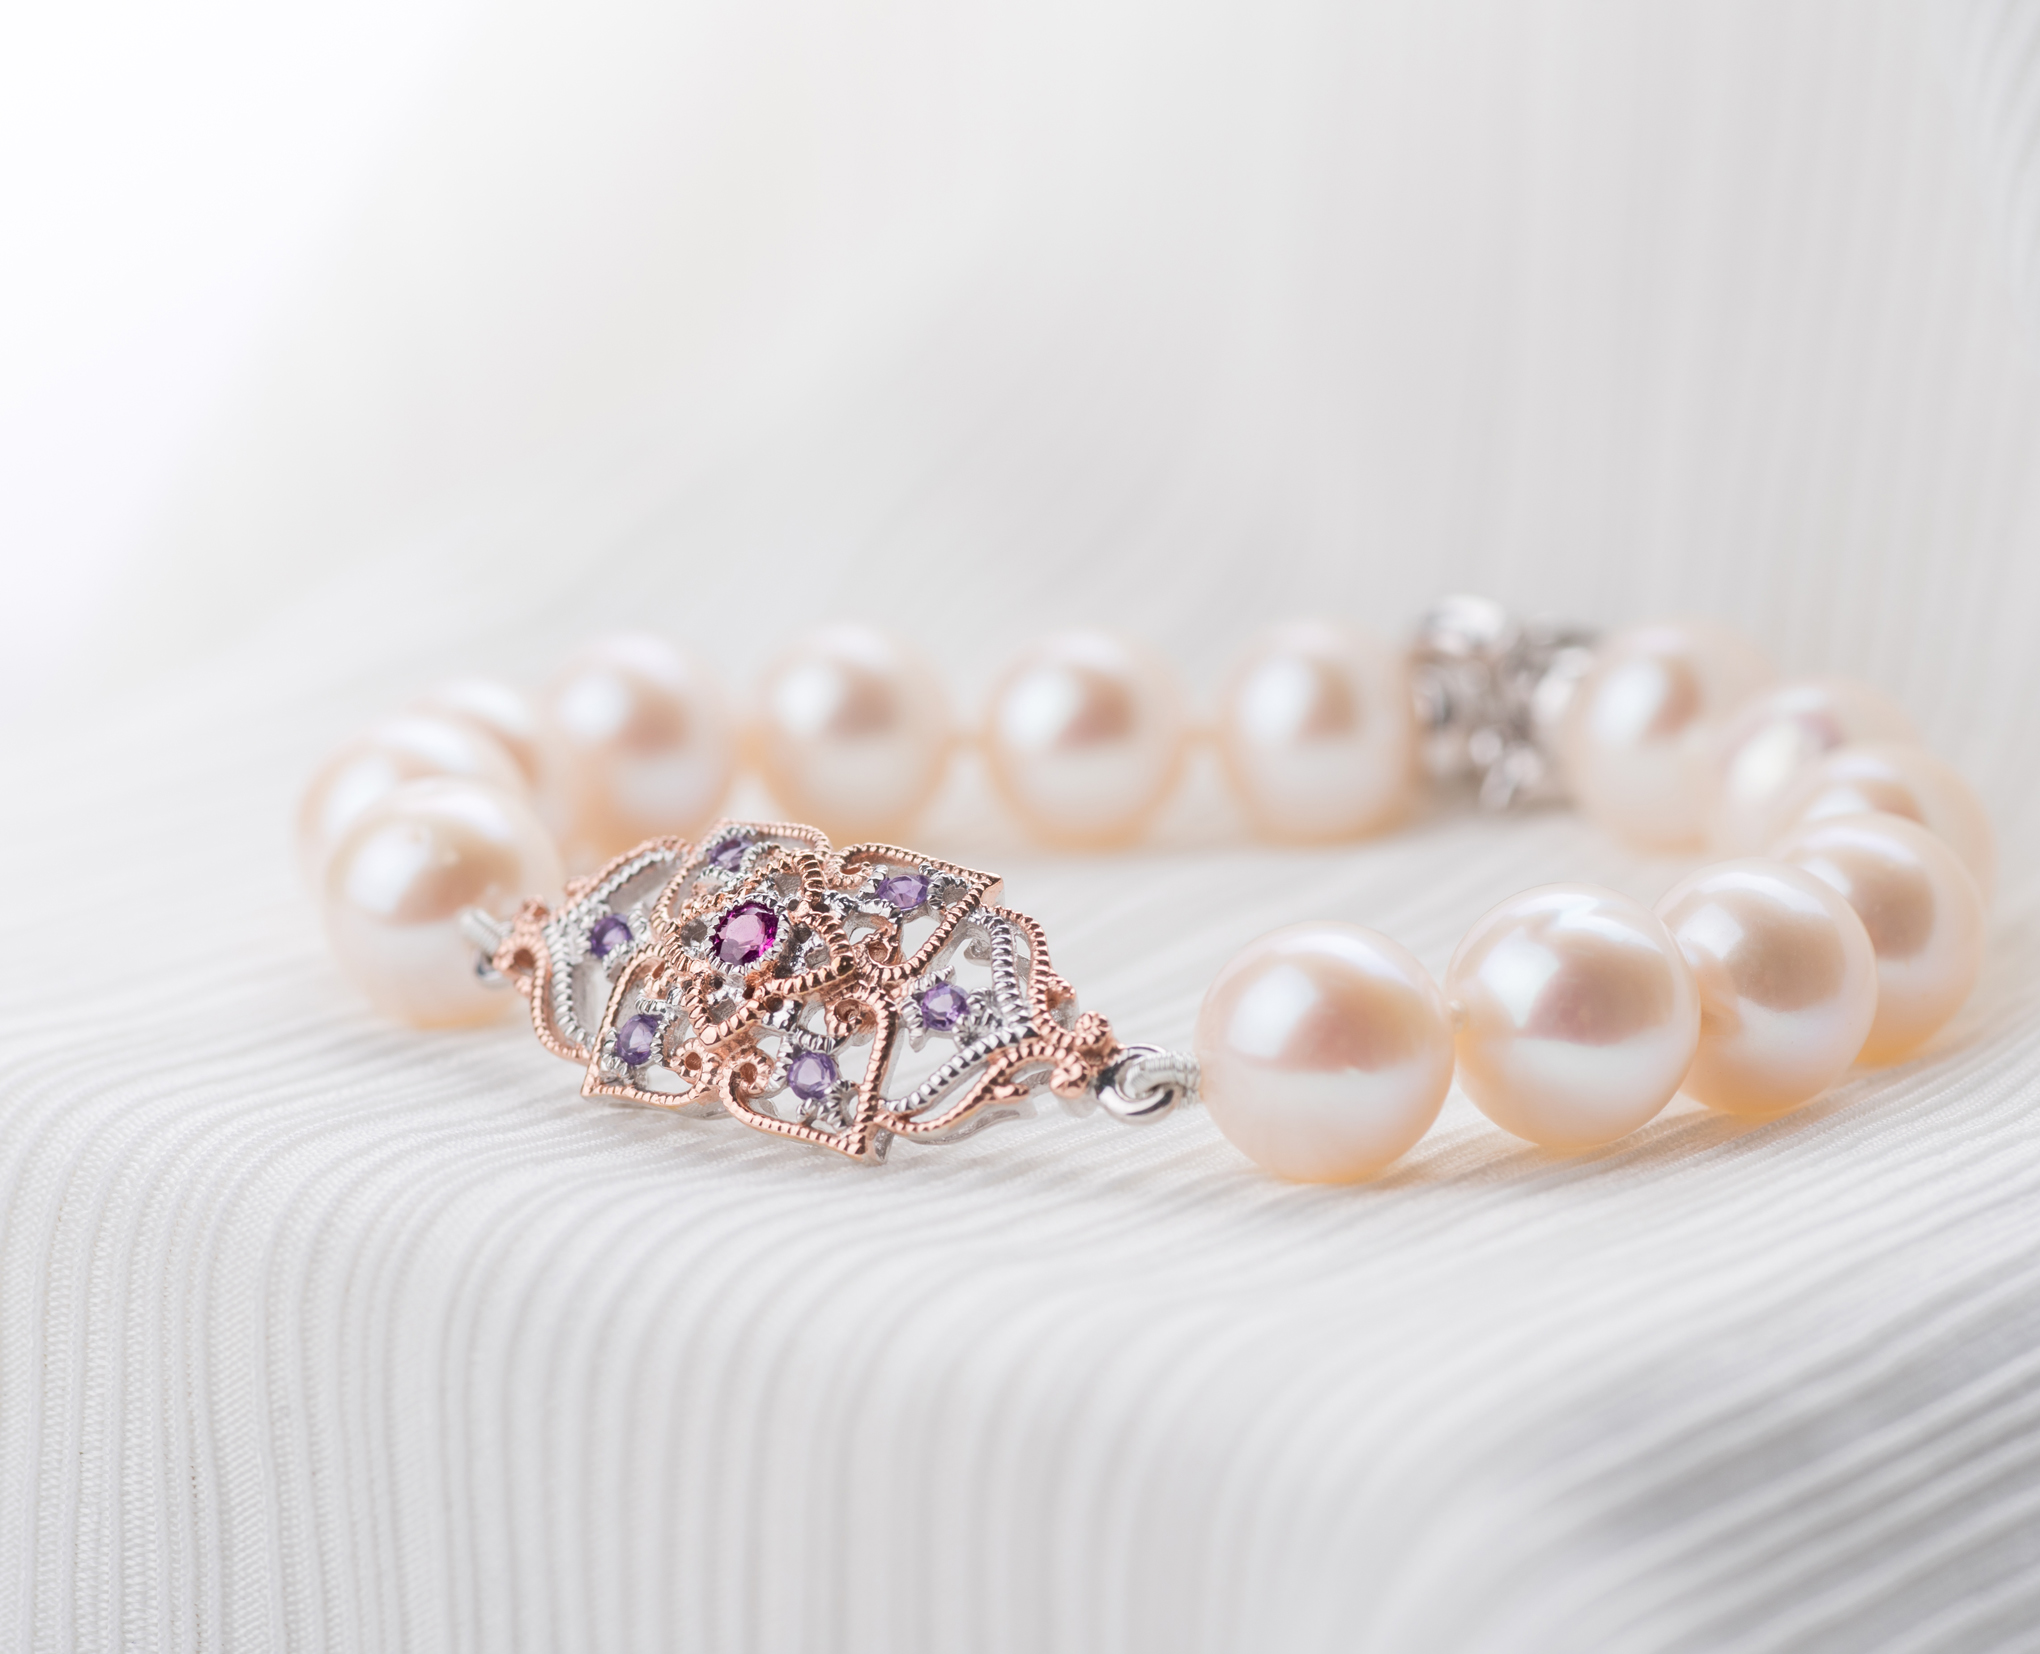 For Your Best Friend - the one who's seen the best and worst of youRemember the friendship bands you used to exchange with your best friend? As precious as those bands were, there's nothing quite like a string of pearls to strengthen your friendship and to thank her for always being there through thick and thin. After all, pearls are symbols of purity, innocence and love - virtues of great friendships that go a long way back. Featuring freshwater pearls, the Peranakan Lace Pearl Bracelet in 9KT solid gold is worthy of celebrating life's most special moments and people.